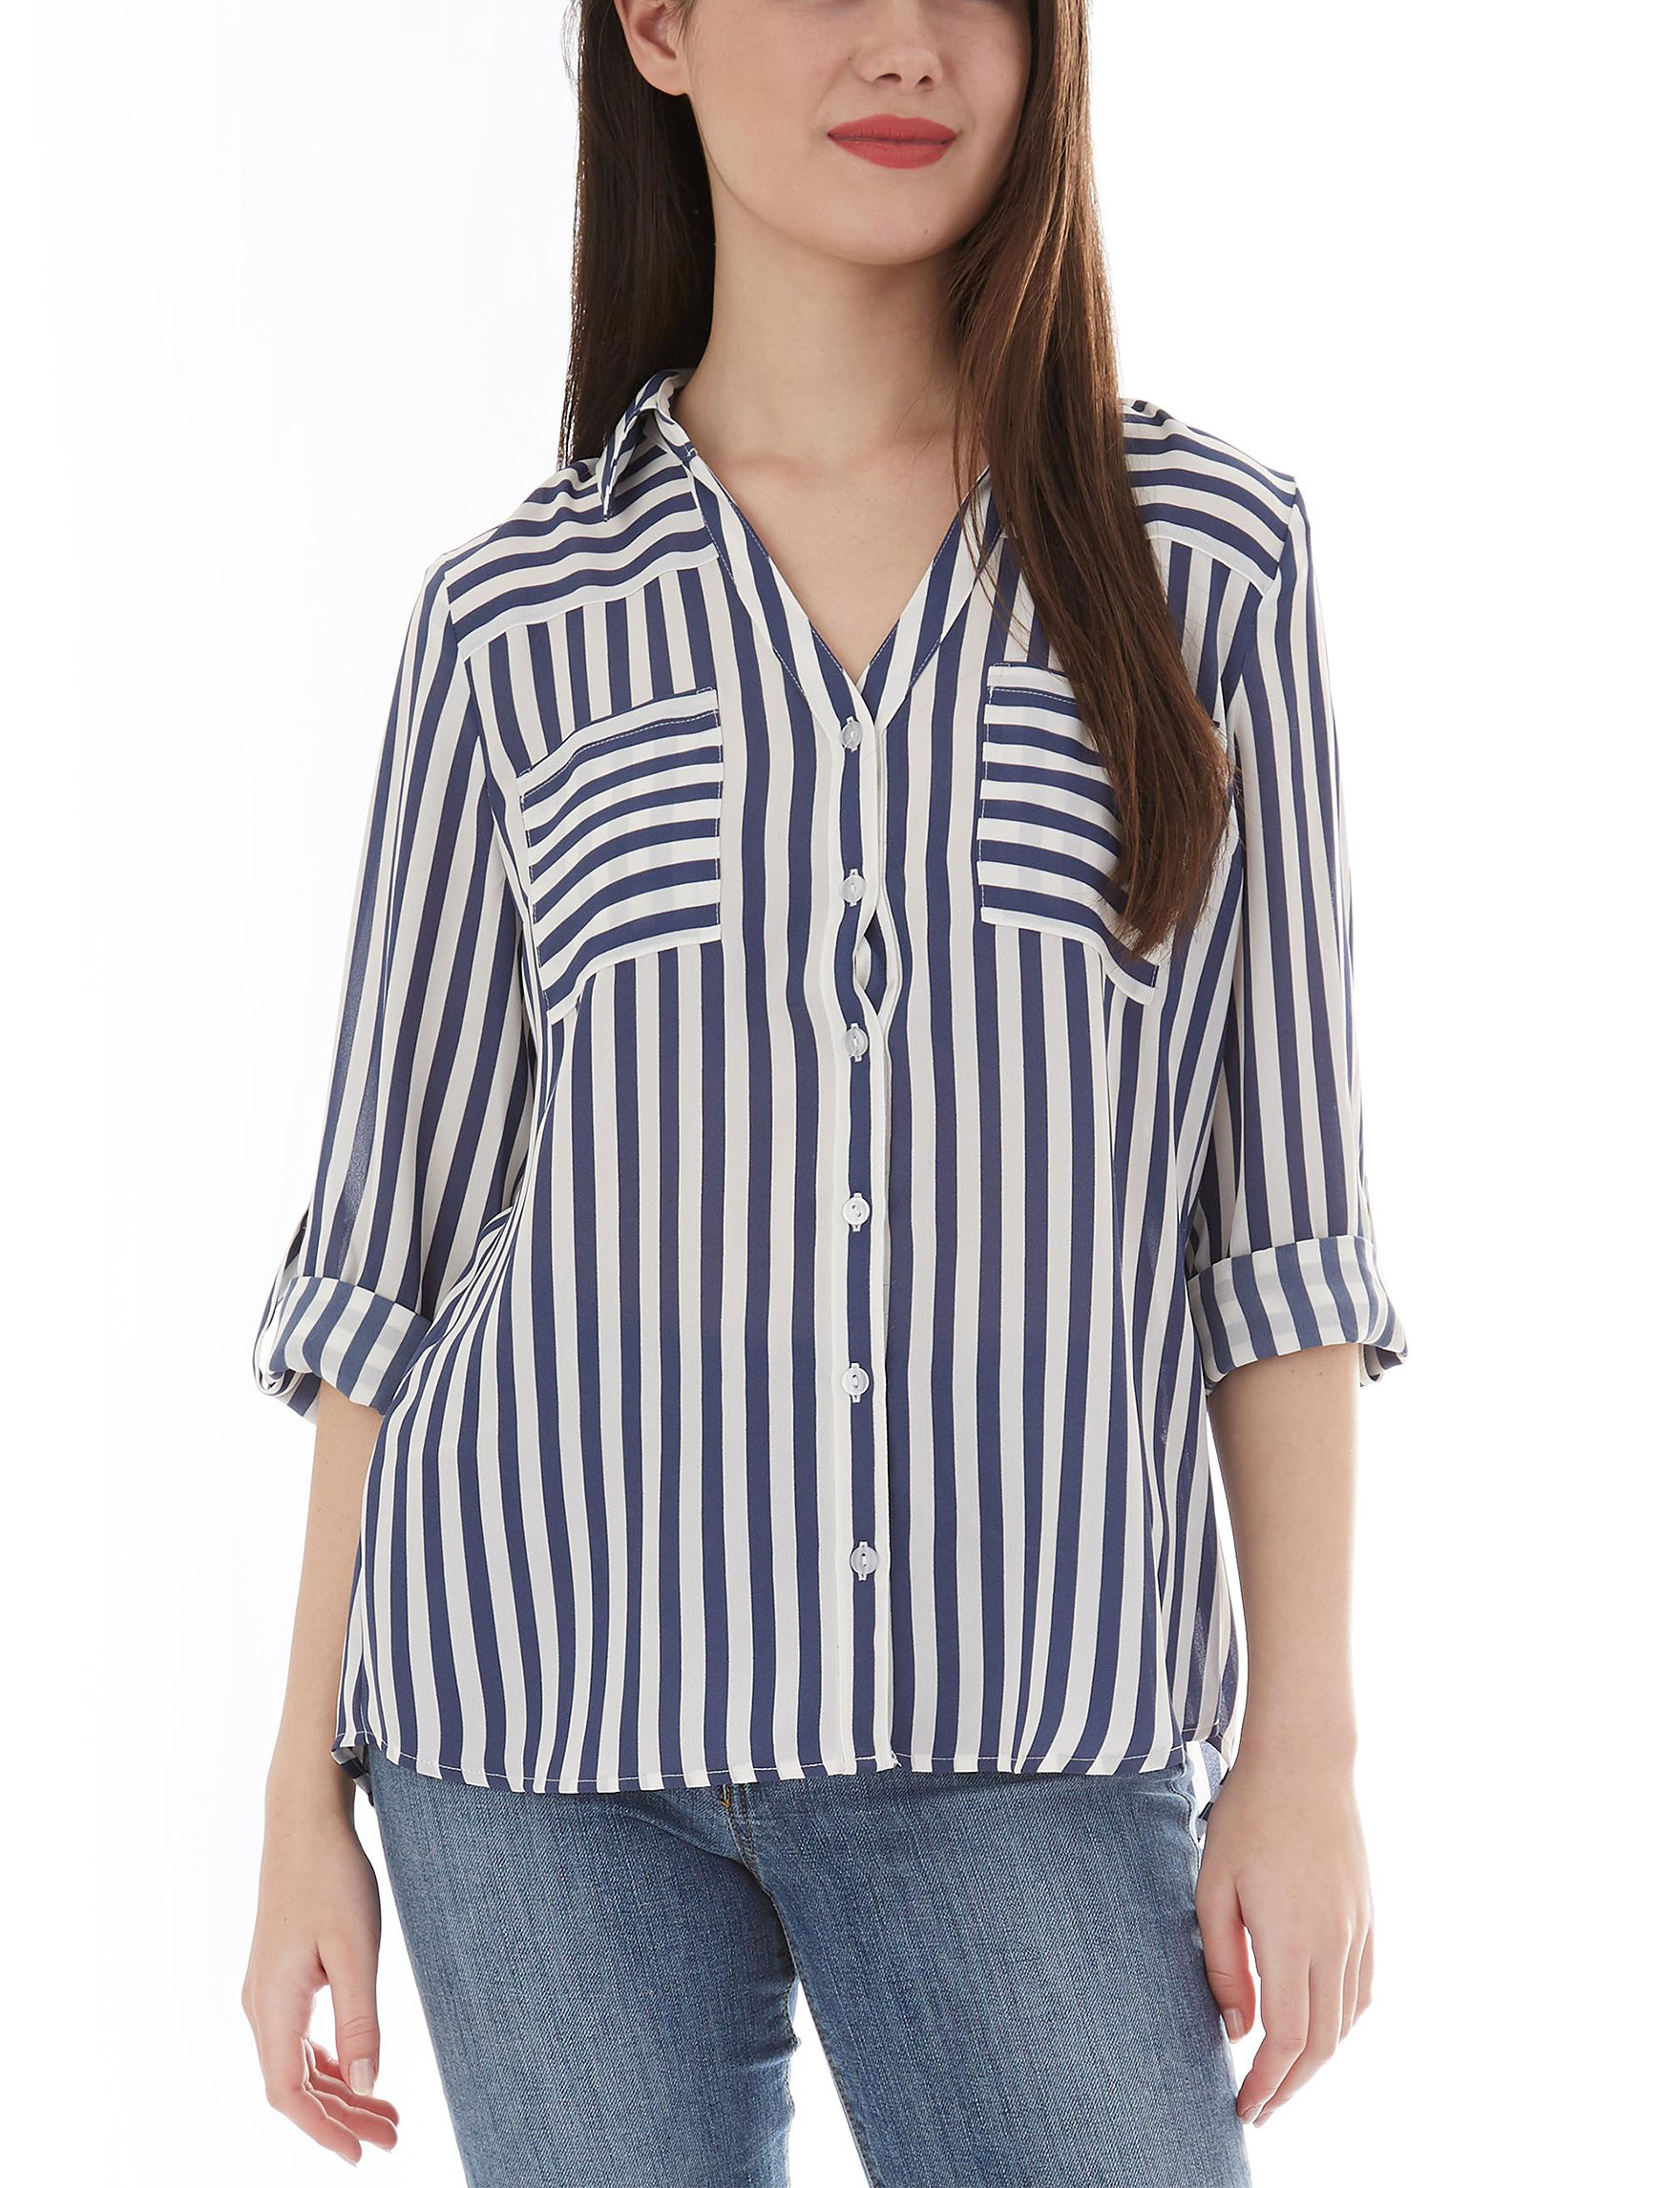 A. Byer White / Blue Shirts & Blouses